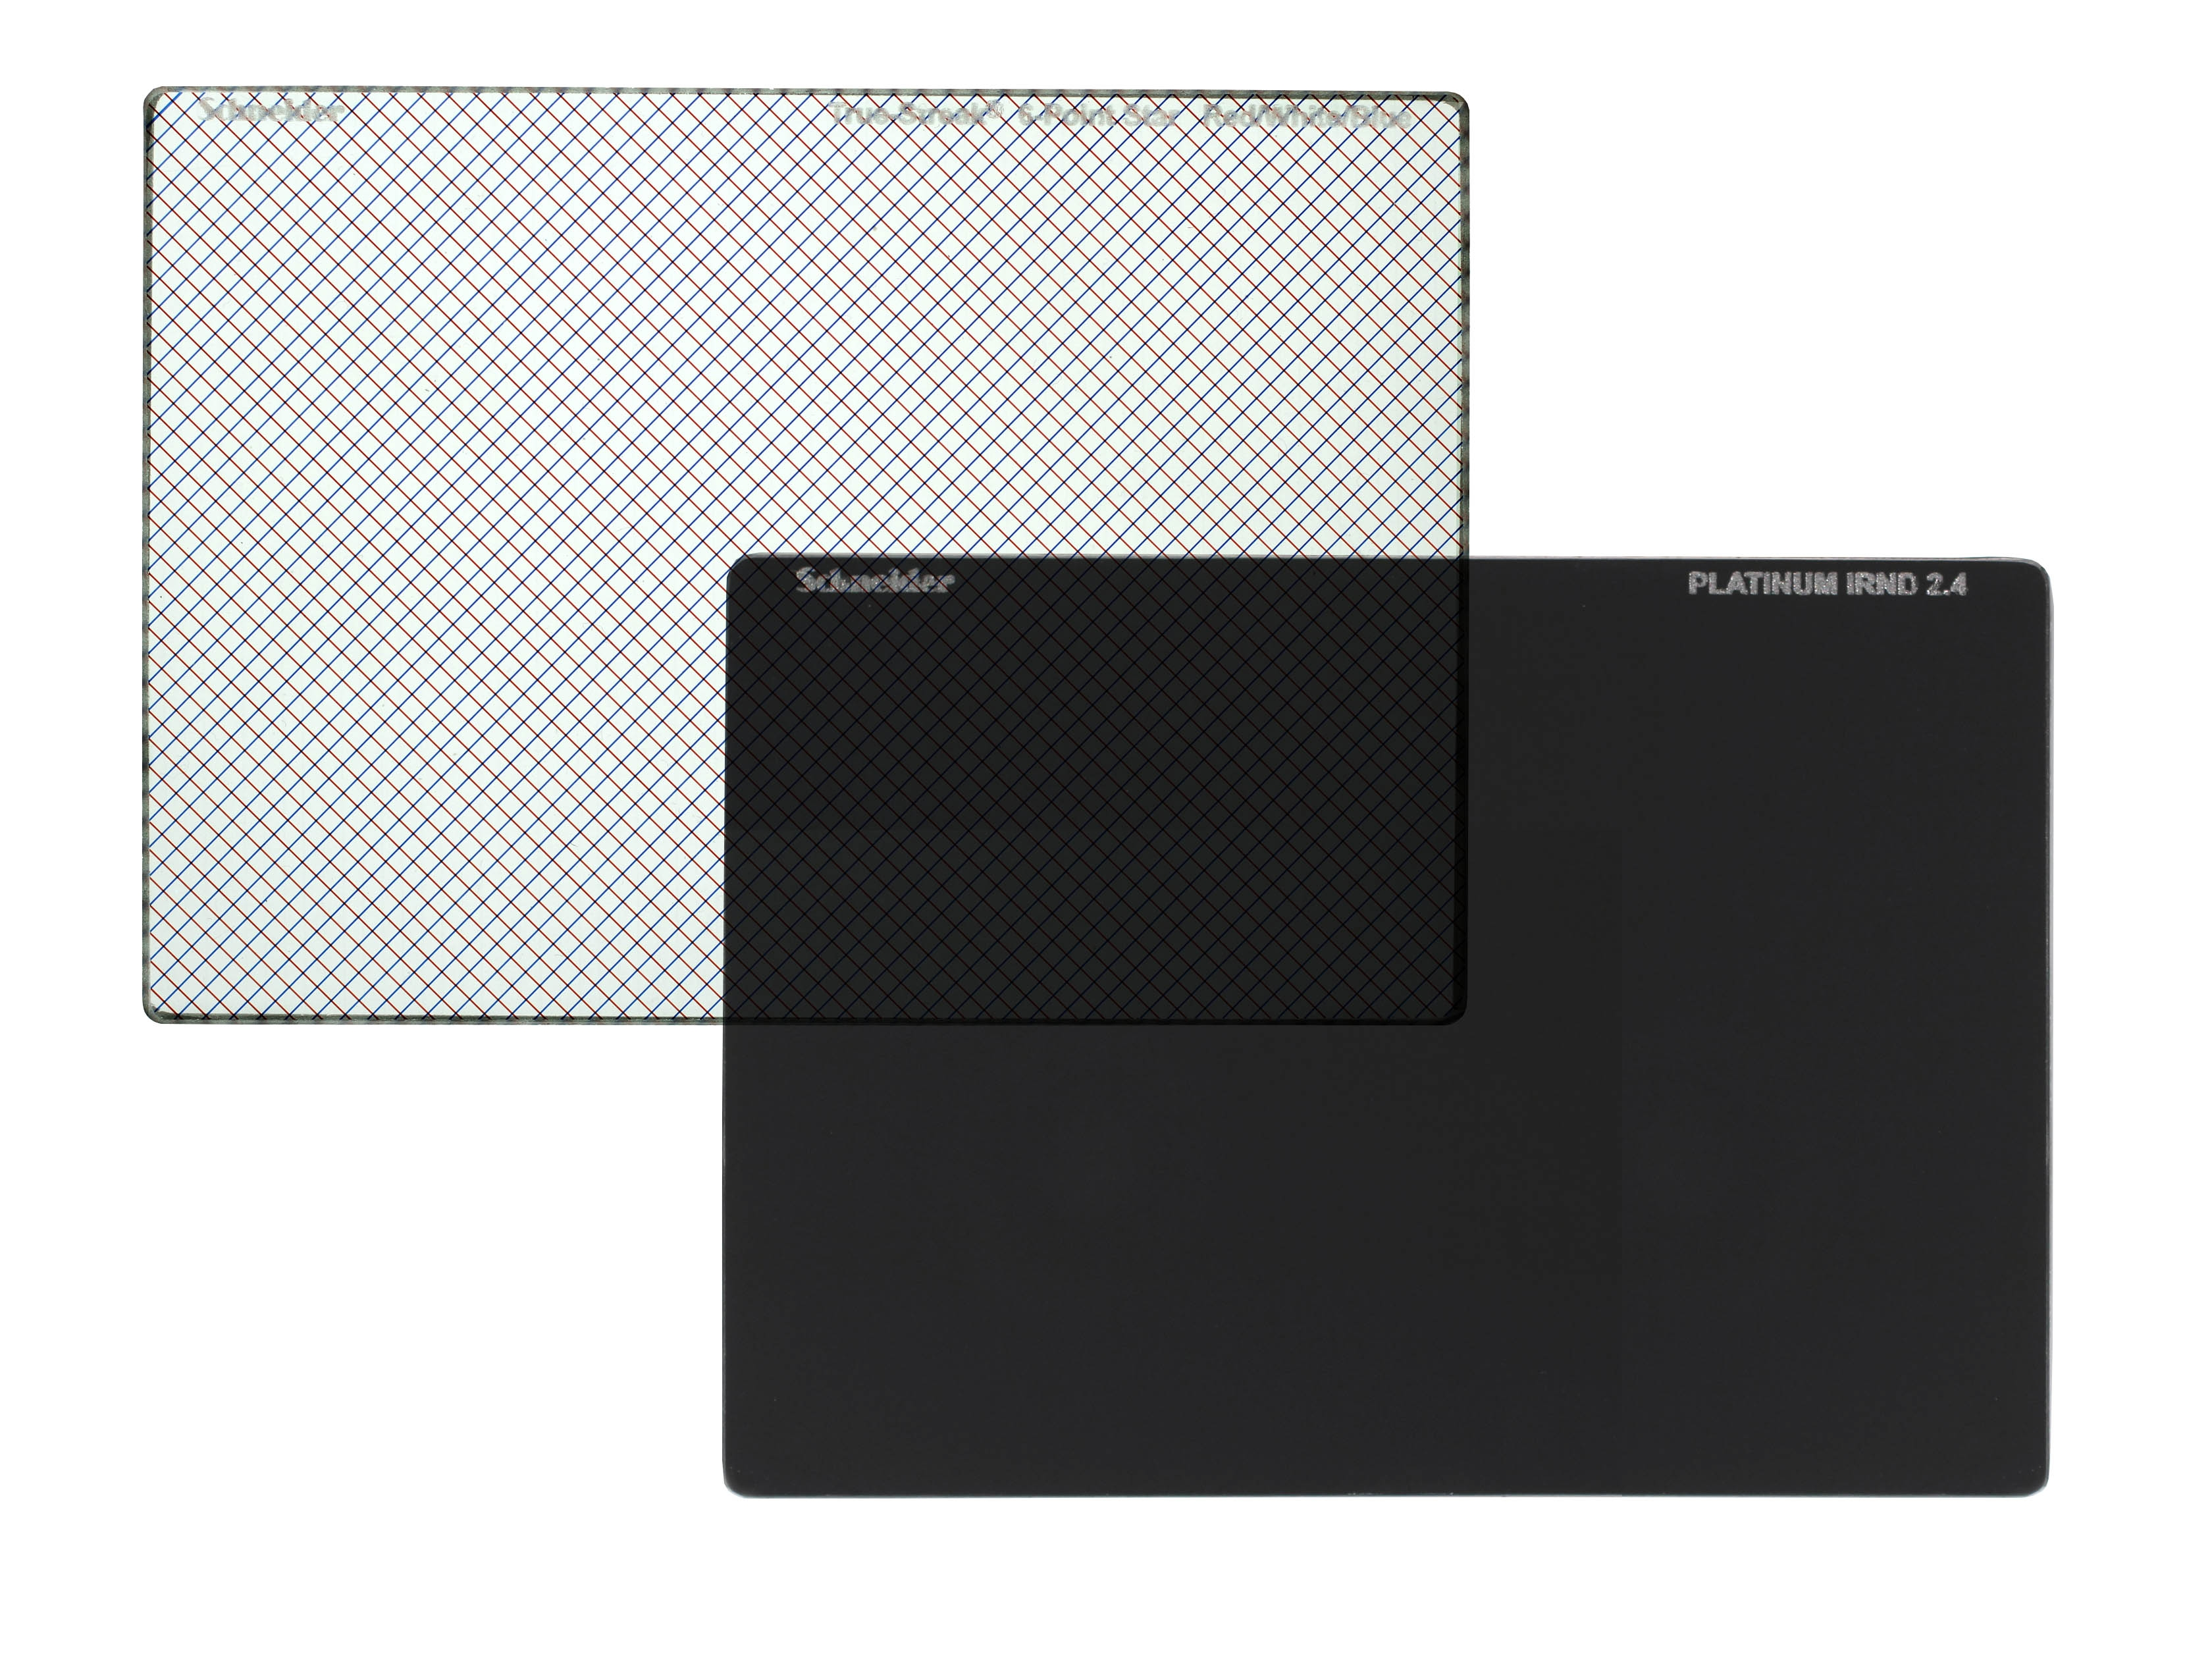 Schneider Platinum IRND filter and True-Streak® effects Star filters